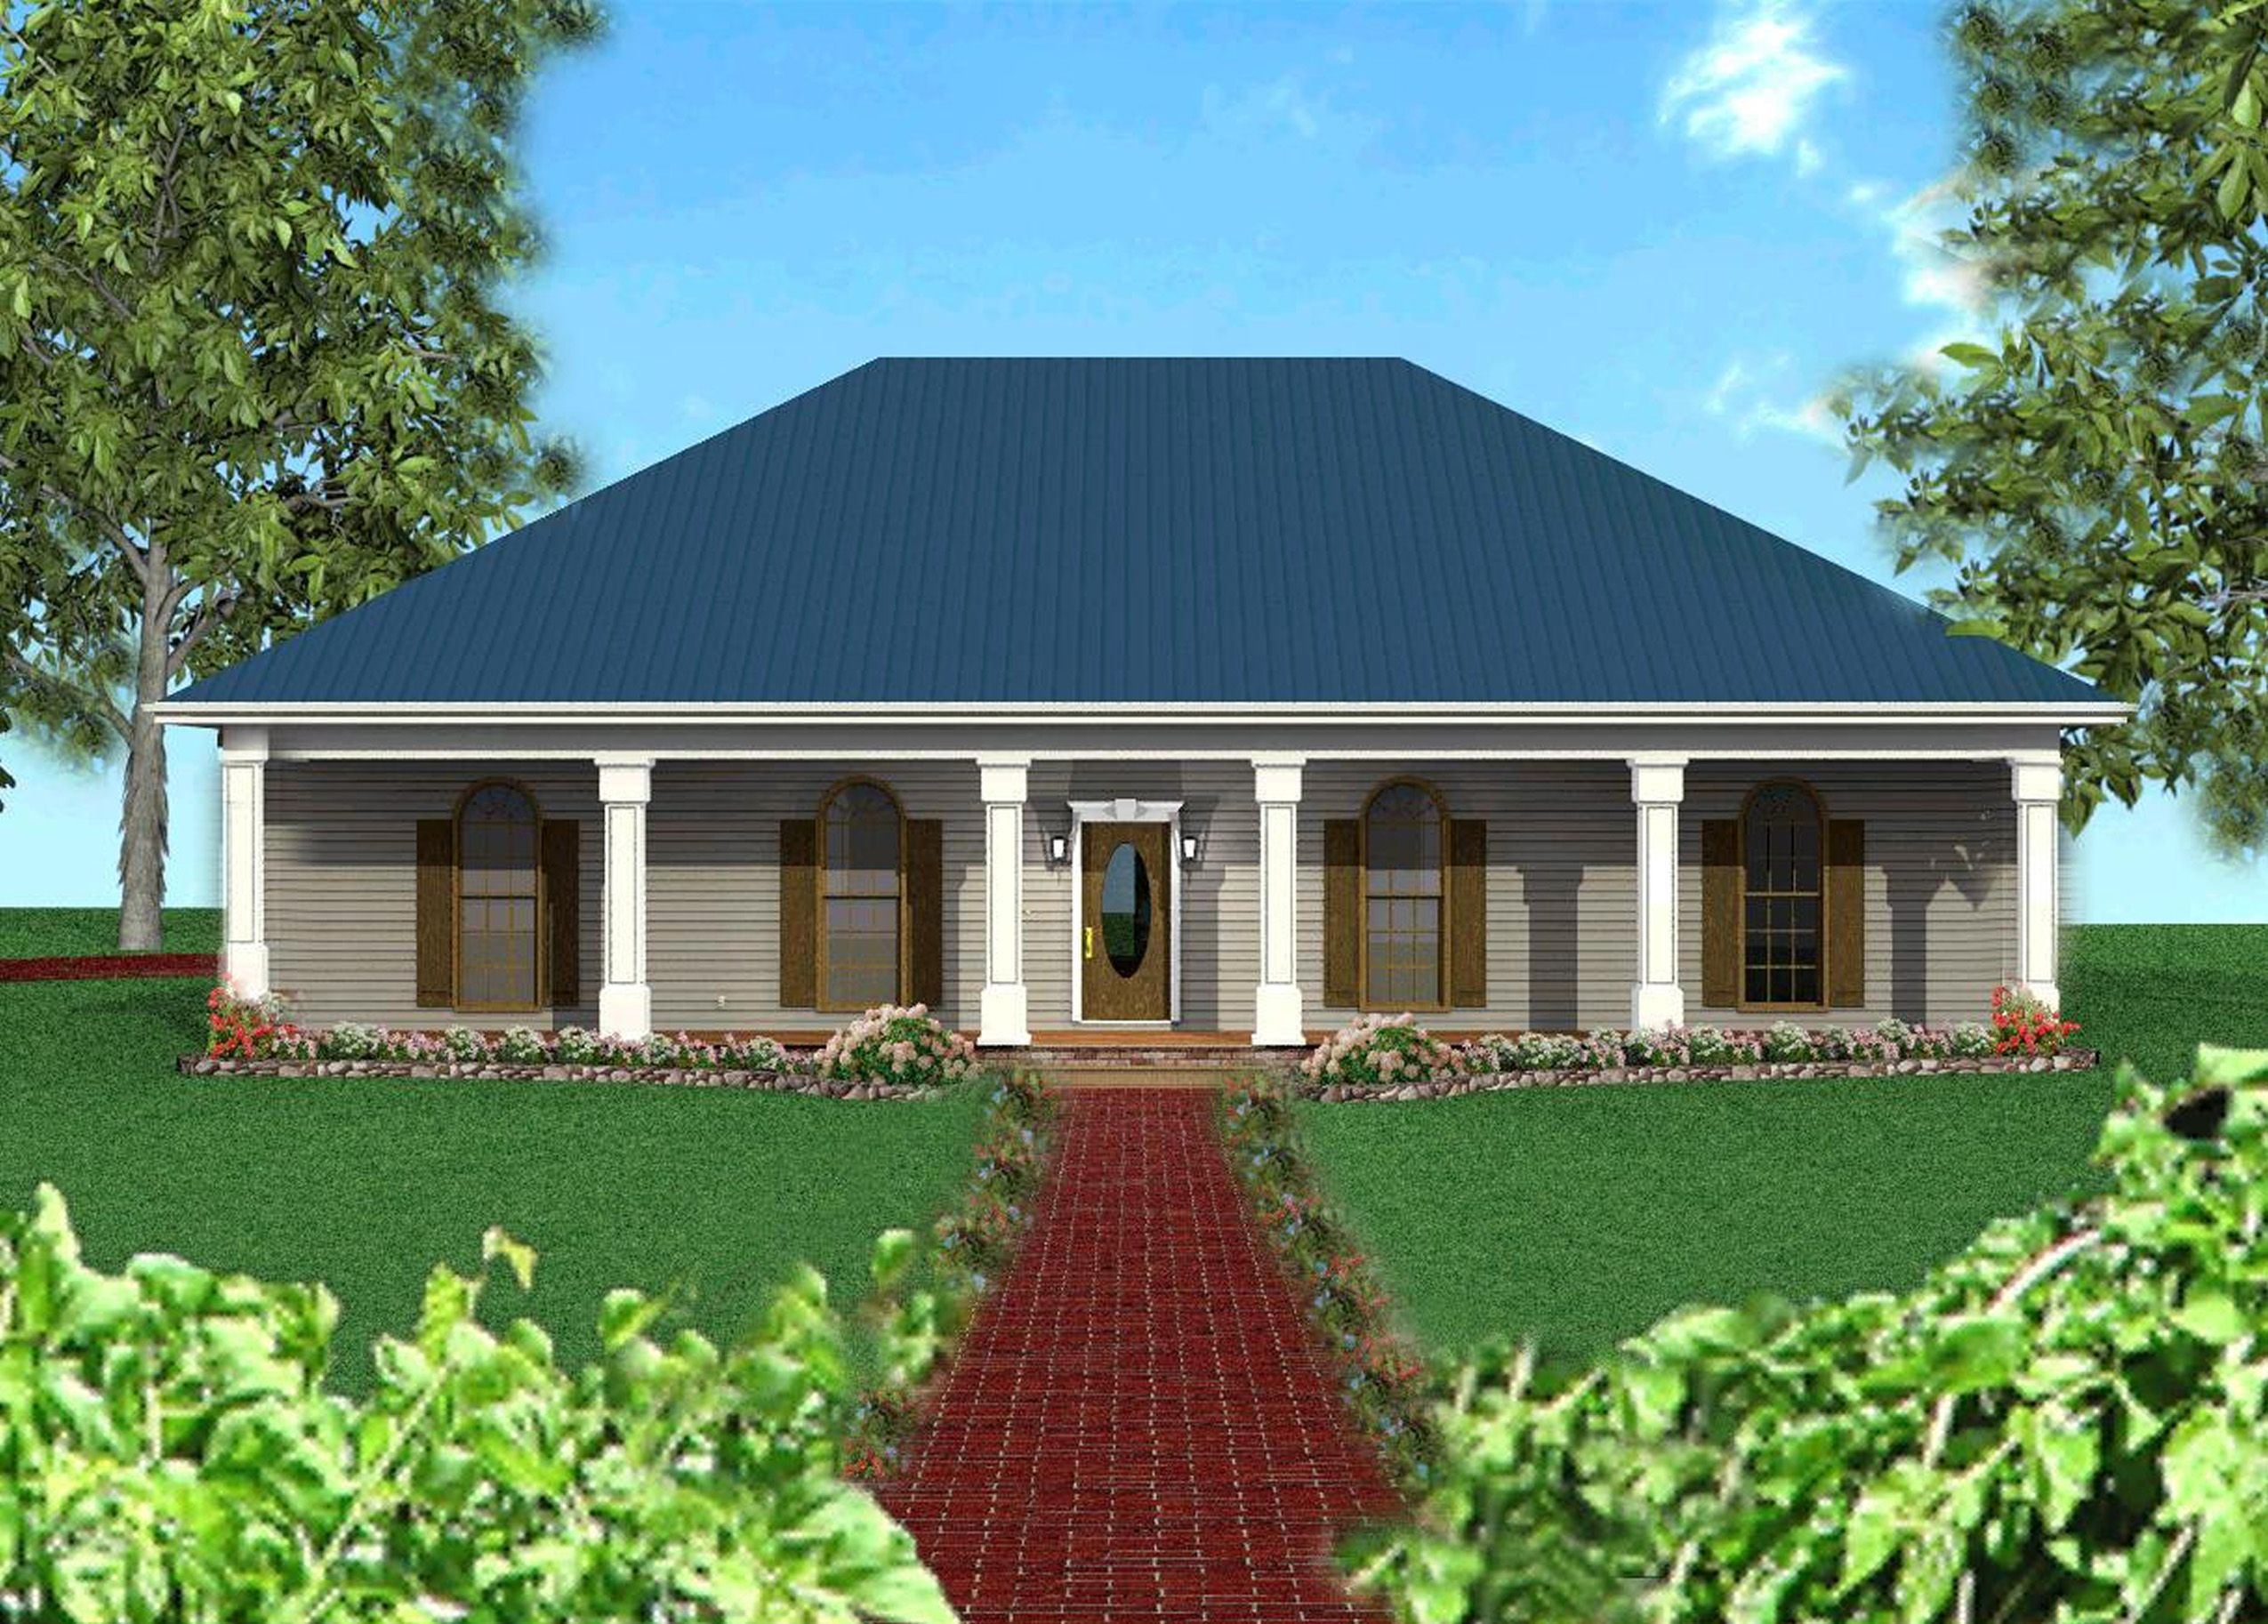 ranch home with hip roof and covered entrance design ideas the house designers Classic Southern with a Hip Roof - 2521DH | Country, Southern, 1st Floor  Master Suite, PDF, Split Bedrooms | Architectural Designs